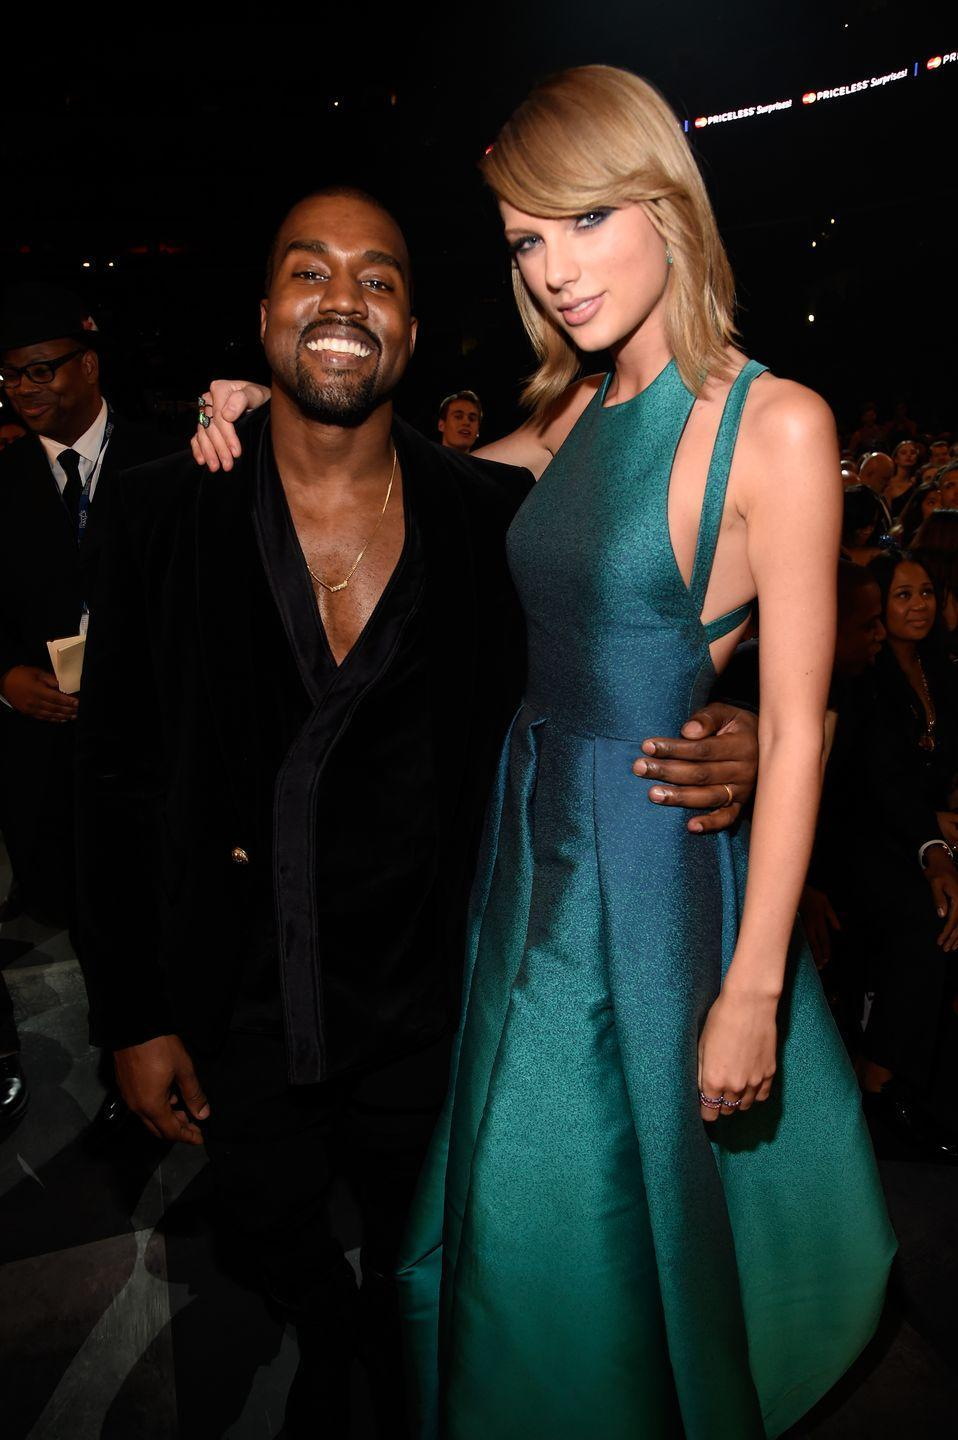 """<p>... until old wounds opened back up again in 2016, when Kanye released a song called """"Famous,"""" in which he directed some crude lyrics about Taylor. When Taylor publicly denounced the song, Kanye's wife Kim Kardashian released secret recordings of a private phone call in which the pop star seemingly gave approval of the lyrics, which led to intense internet backlash against Taylor. Most recently, though, a <a href=""""https://www.elle.com/culture/celebrities/a31845976/taylor-swift-full-famous-call-kanye-west-leaked/"""" rel=""""nofollow noopener"""" target=""""_blank"""" data-ylk=""""slk:leaked version of the full phone call"""" class=""""link rapid-noclick-resp"""">leaked version of the full phone call</a> seems to support Taylor's version of the story ... and the feud still doesn't seem to have any peaceful end in sight. </p>"""